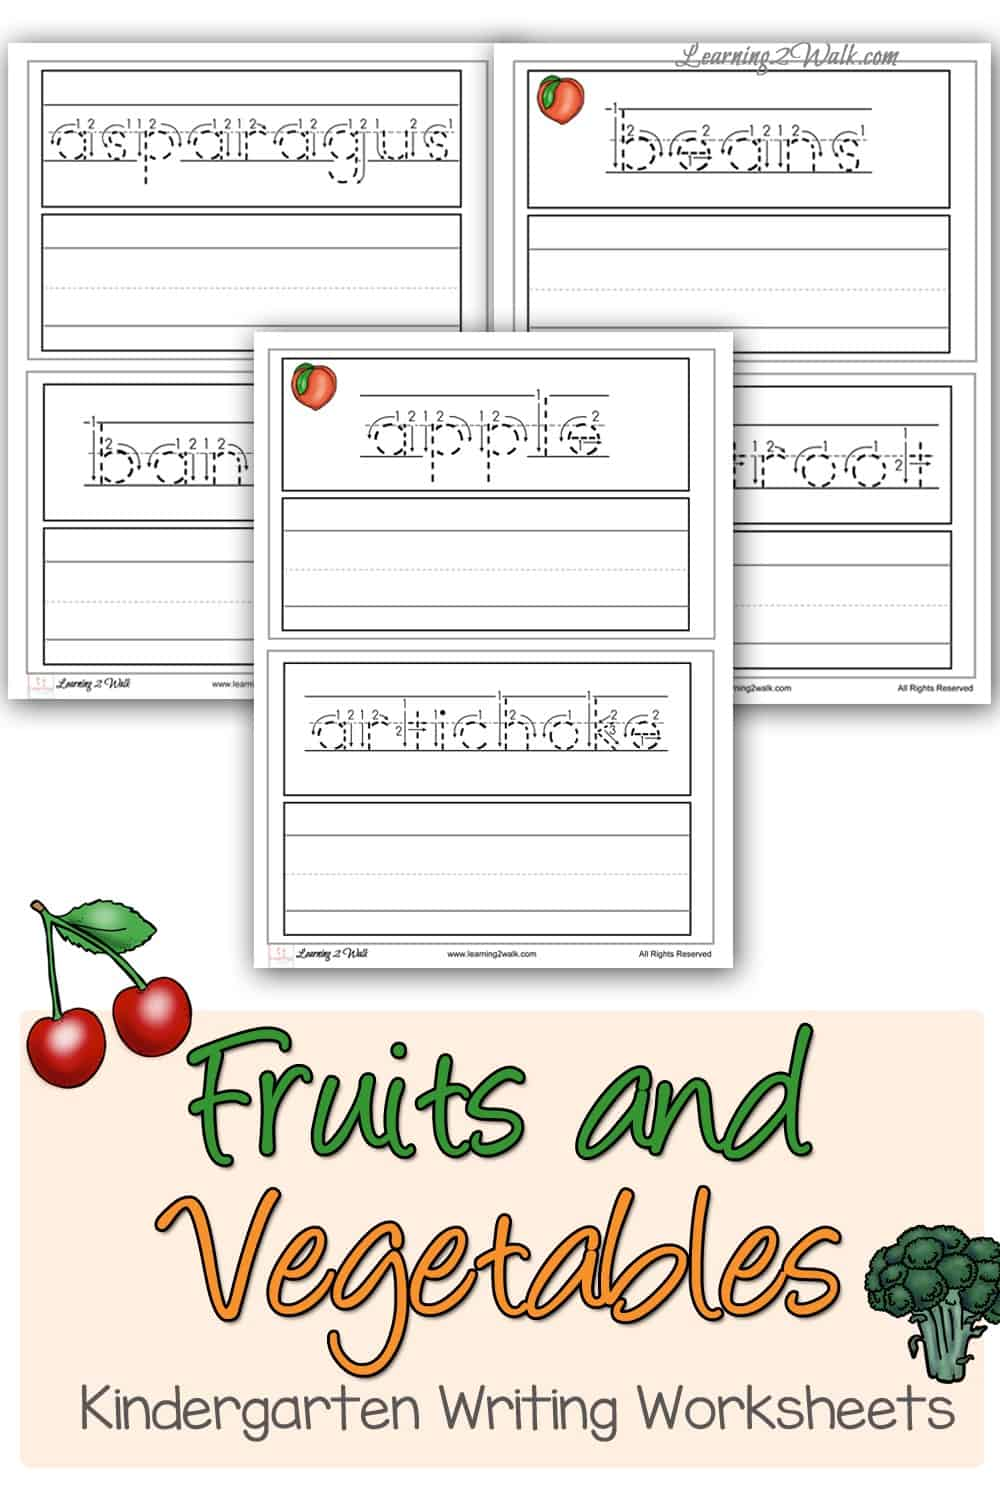 Are you looking for some fruit and vegetable themed kindergarten writing worksheets? Try this free pack of free kindergarten handwriting worksheets as one of your activities. #freeprintablehandwritingworksheets #freekindergartenhandwritingworksheets